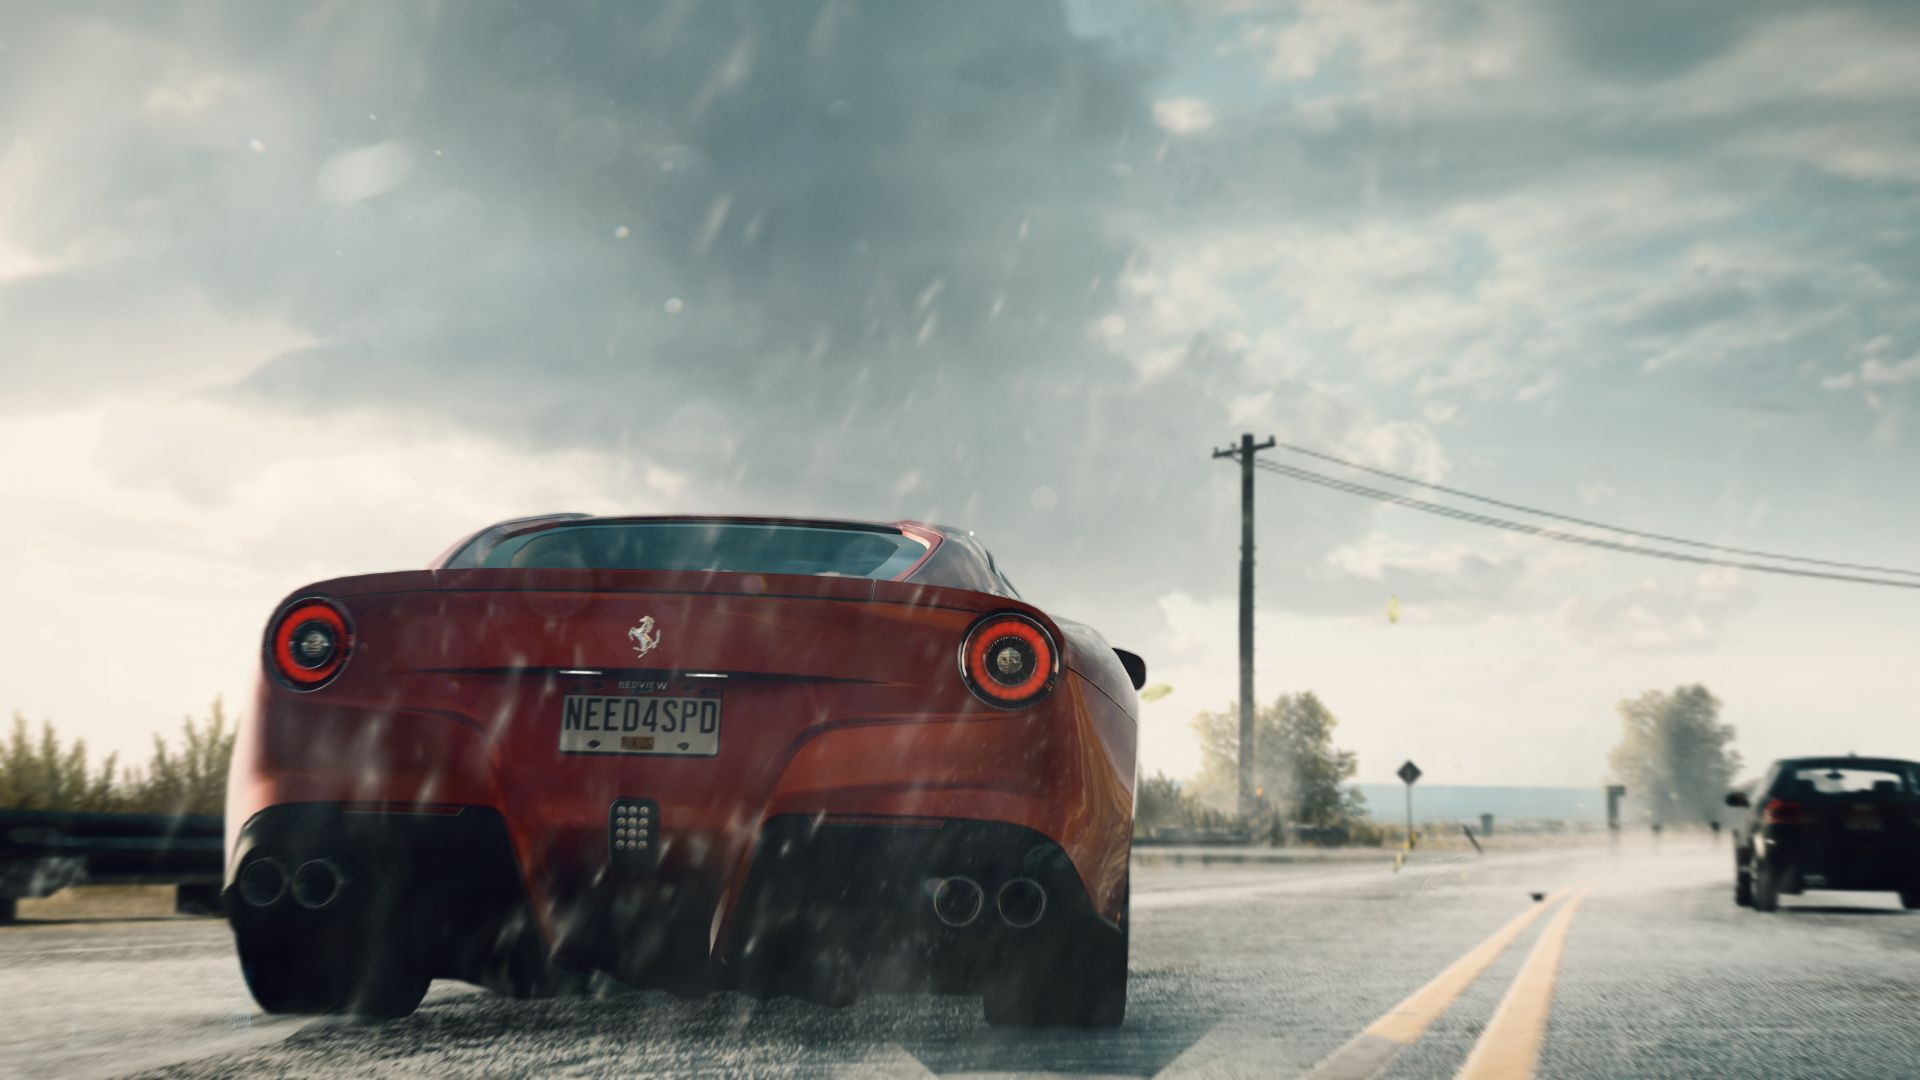 Need for Speed 2015, Best Games 2015, game, racing, Ferrari, sport car, PC, PS4, Xbox One (horizontal)